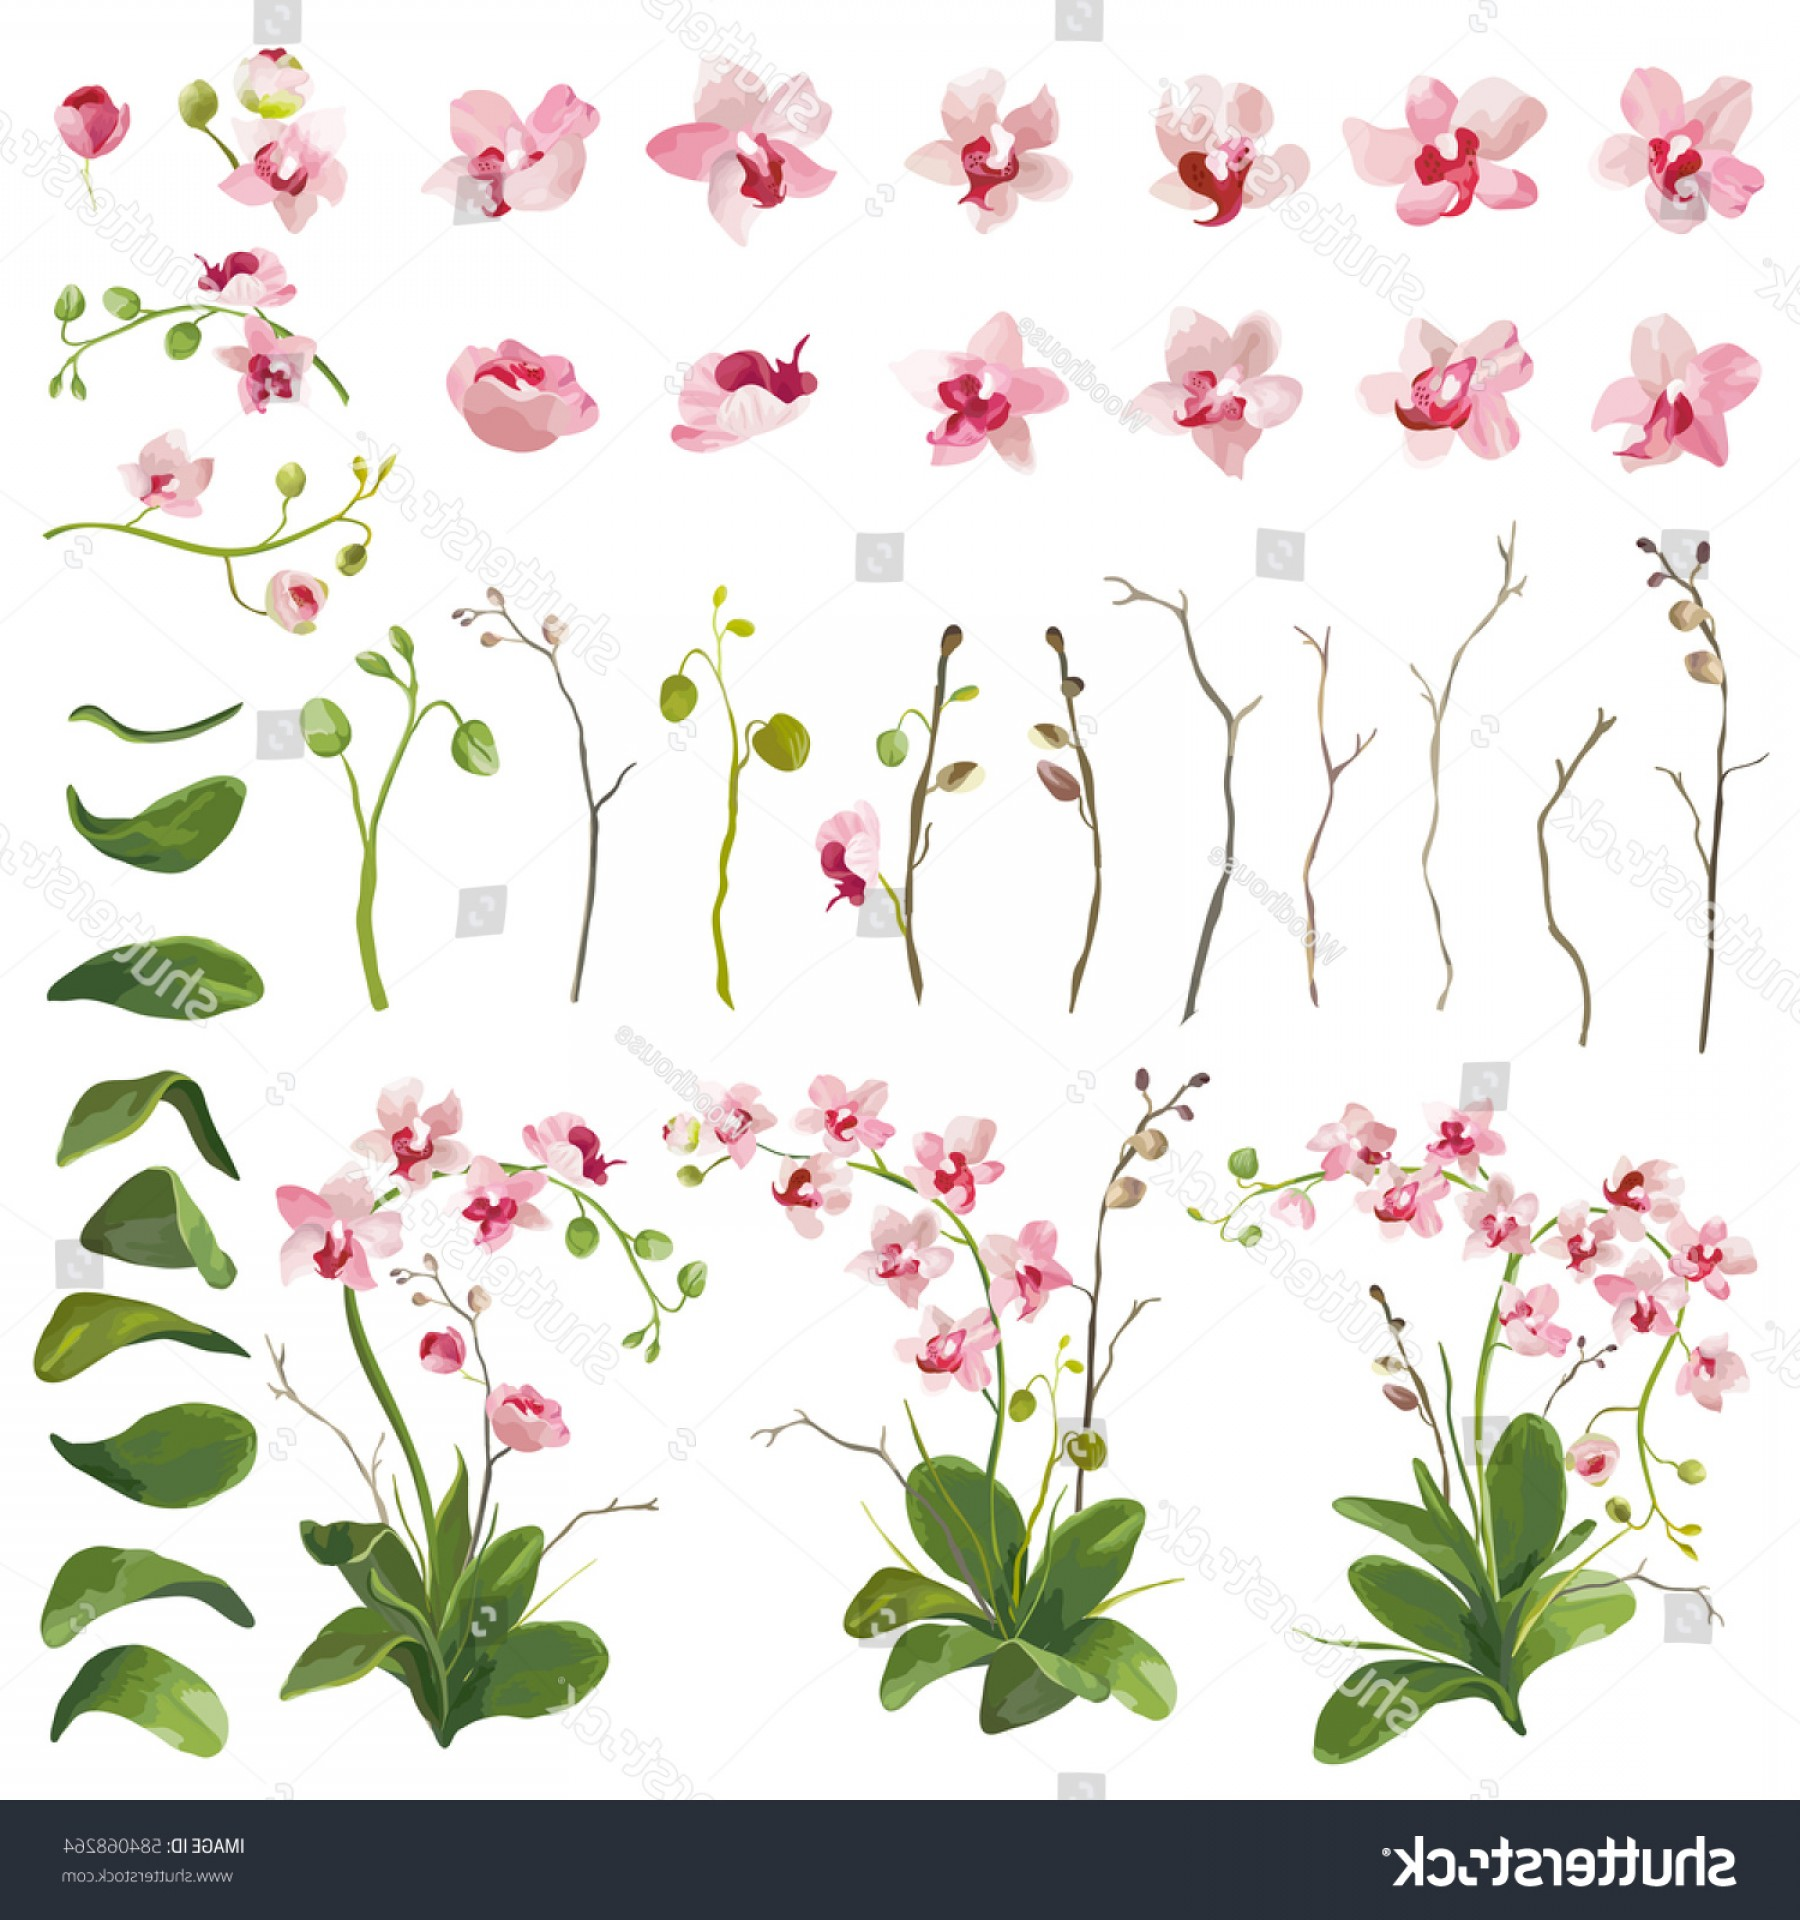 Flower Elements Vector: Orchid Tropical Flowers Floral Elements Watercolor